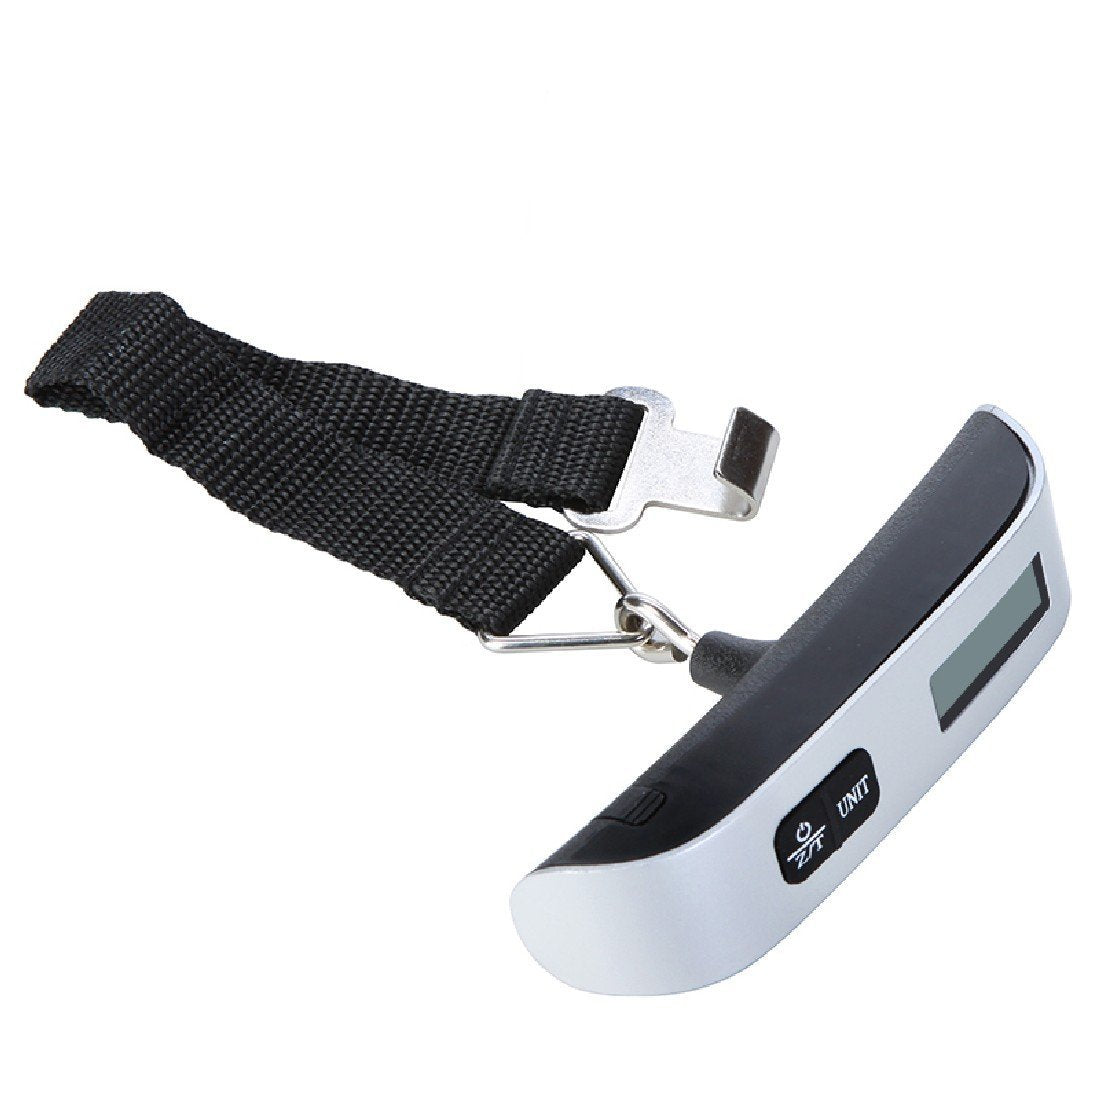 Digital Hanging Luggage Scale with Temperature Sensor